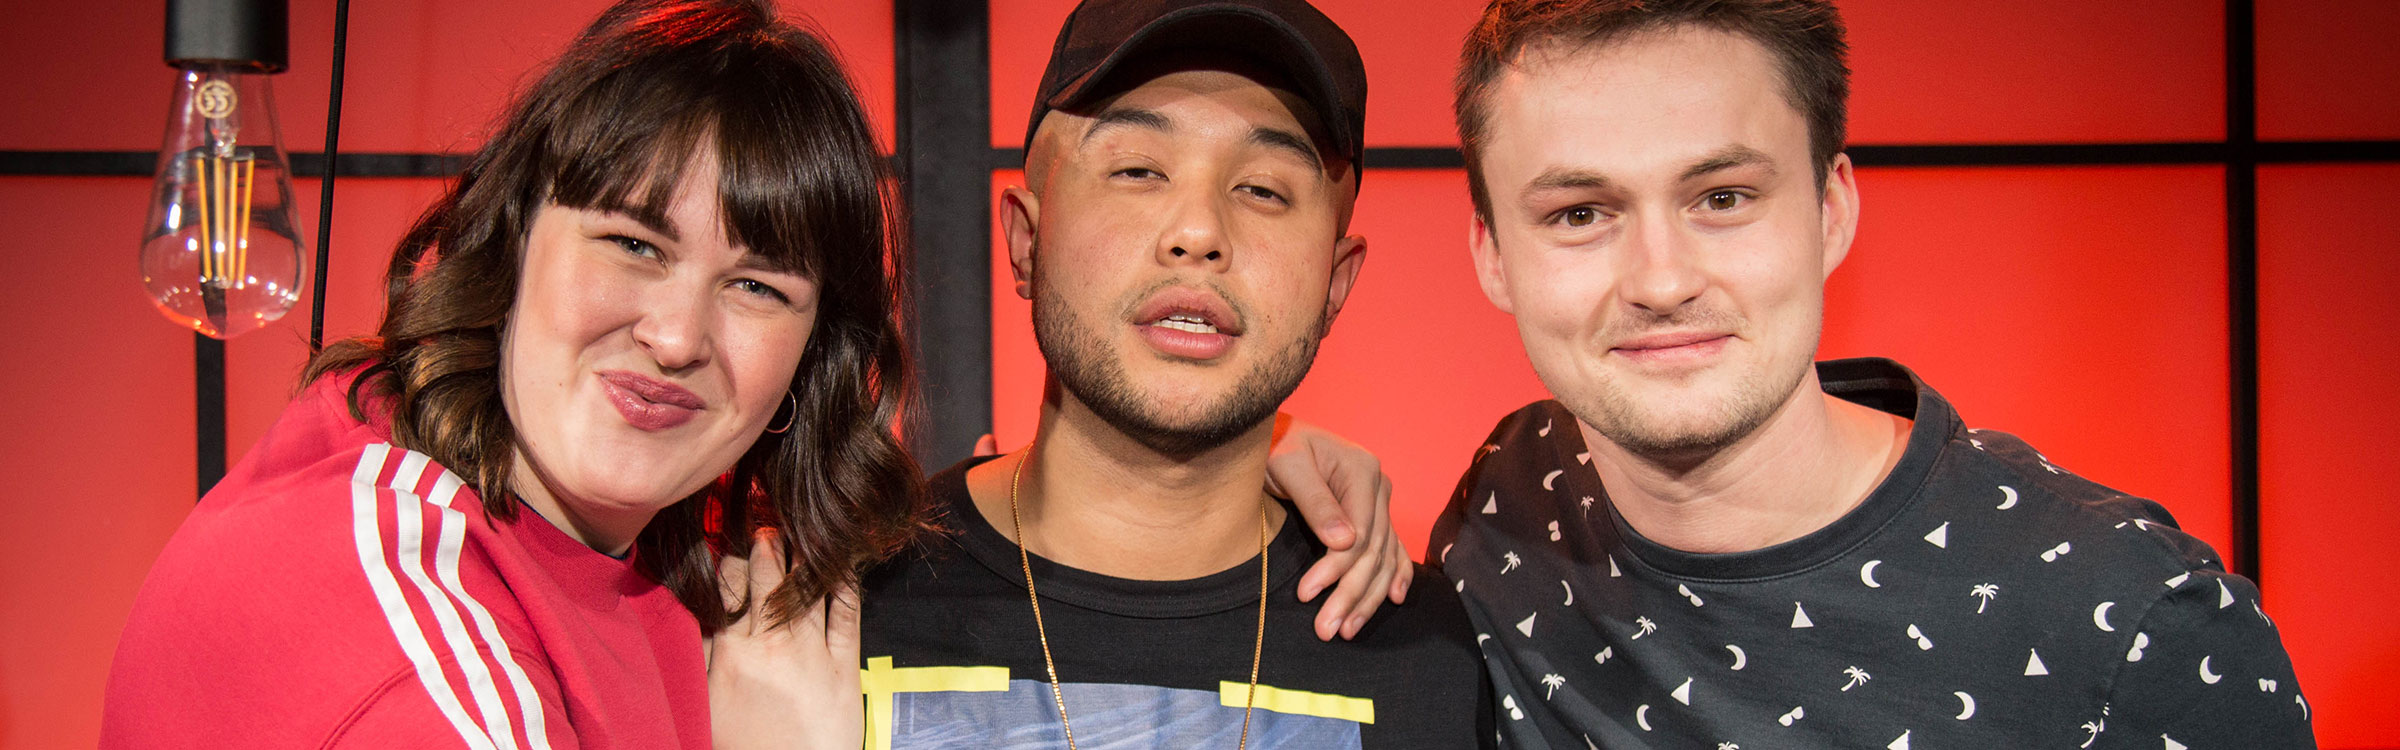 Jax jones header